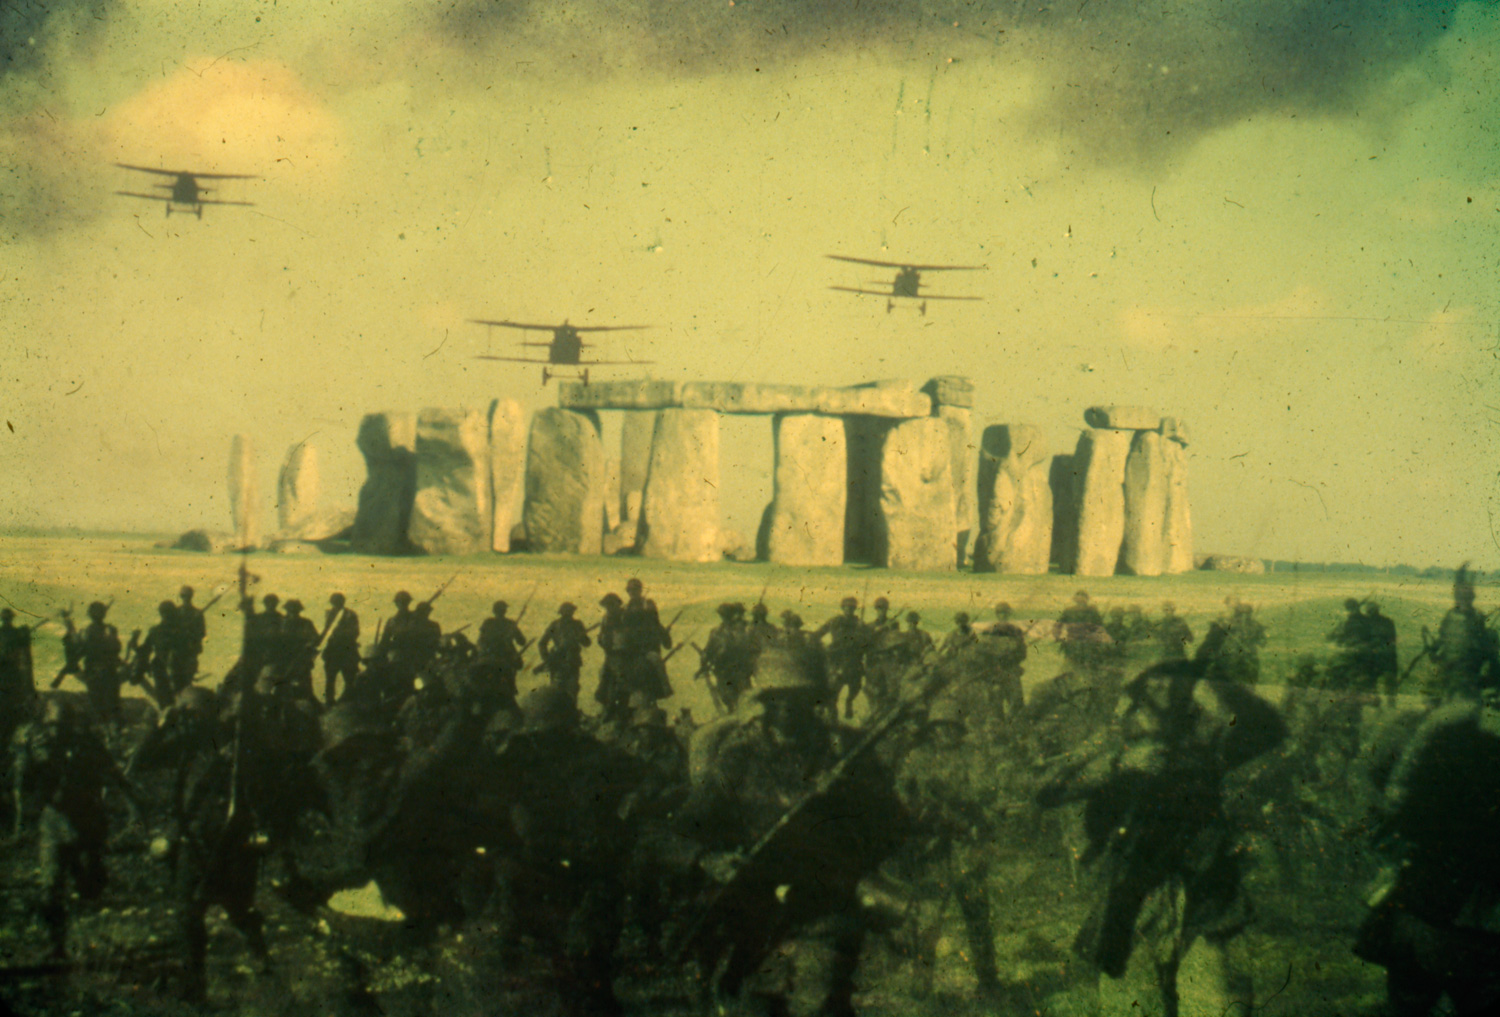 Storming of the Henge